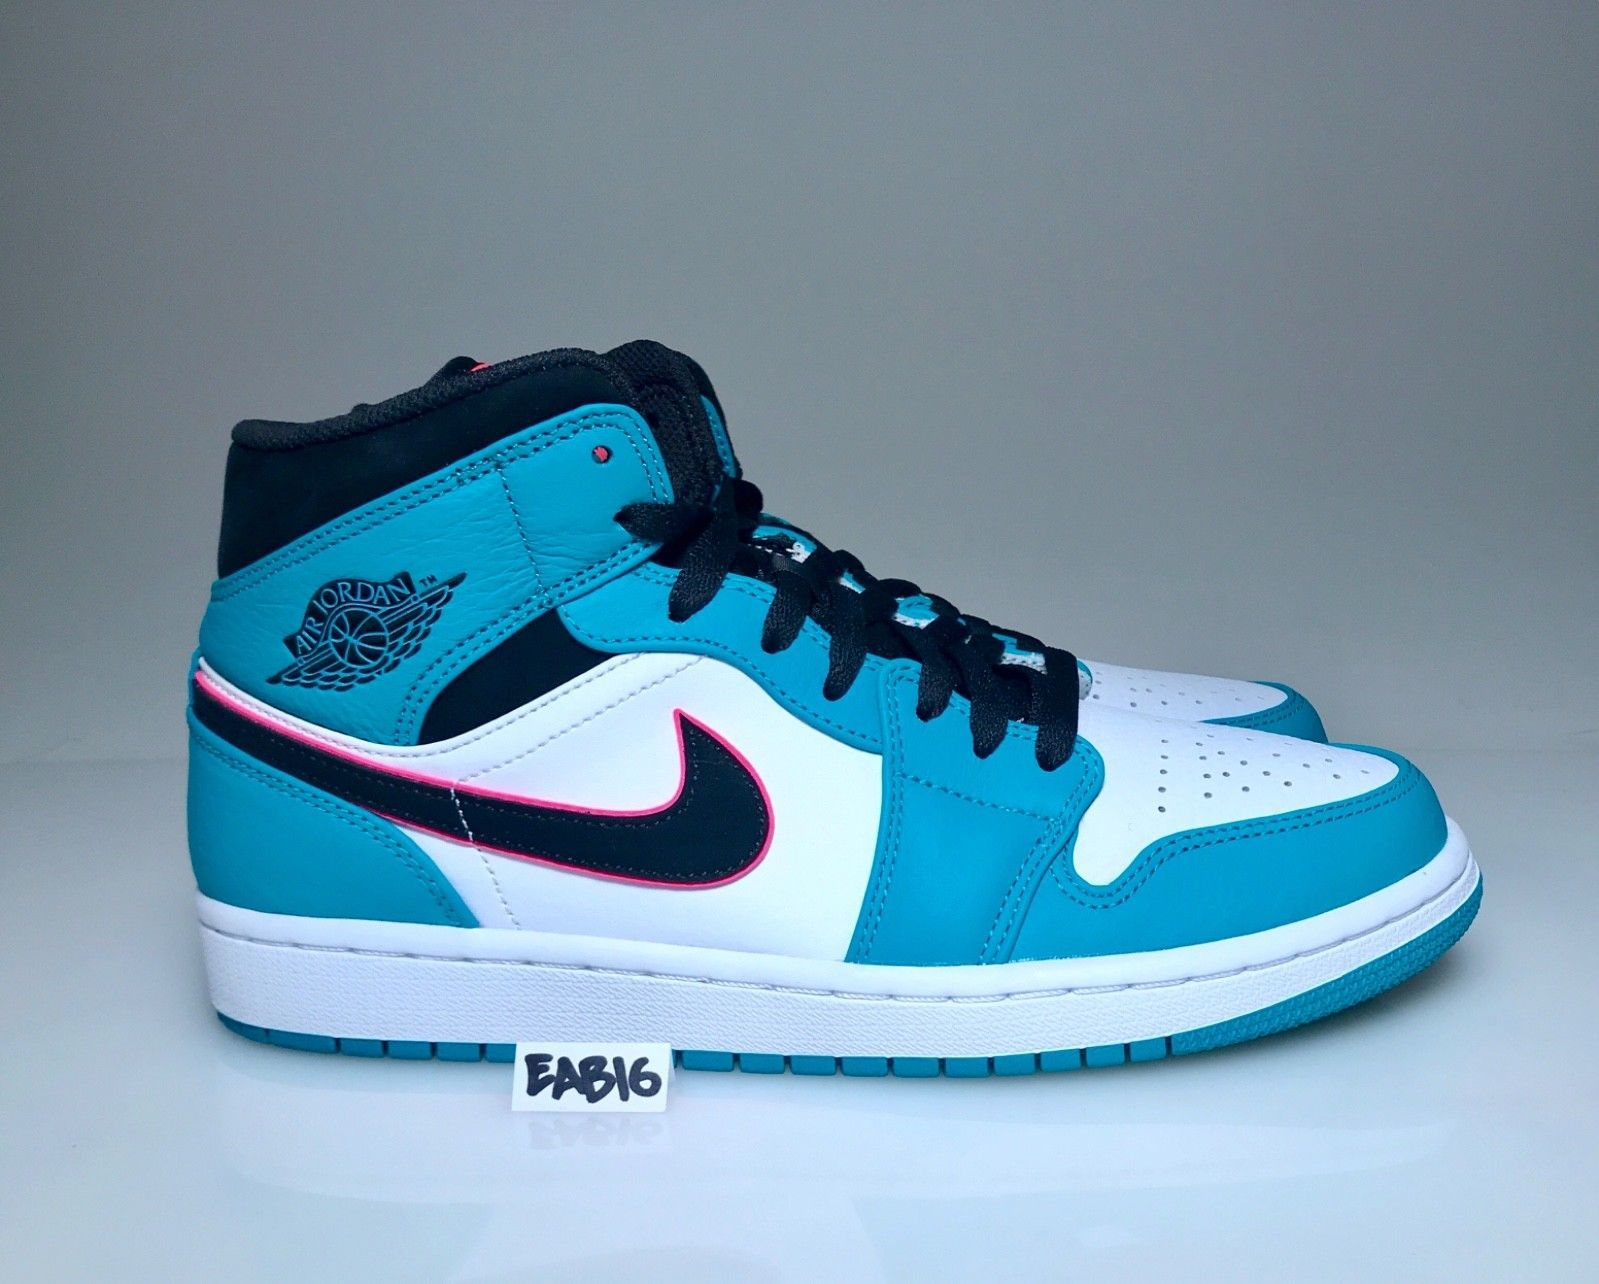 79587355b3b5 Details about Nike Air Jordan 1 Mid SE Riverwalk South Beach Turbo ...